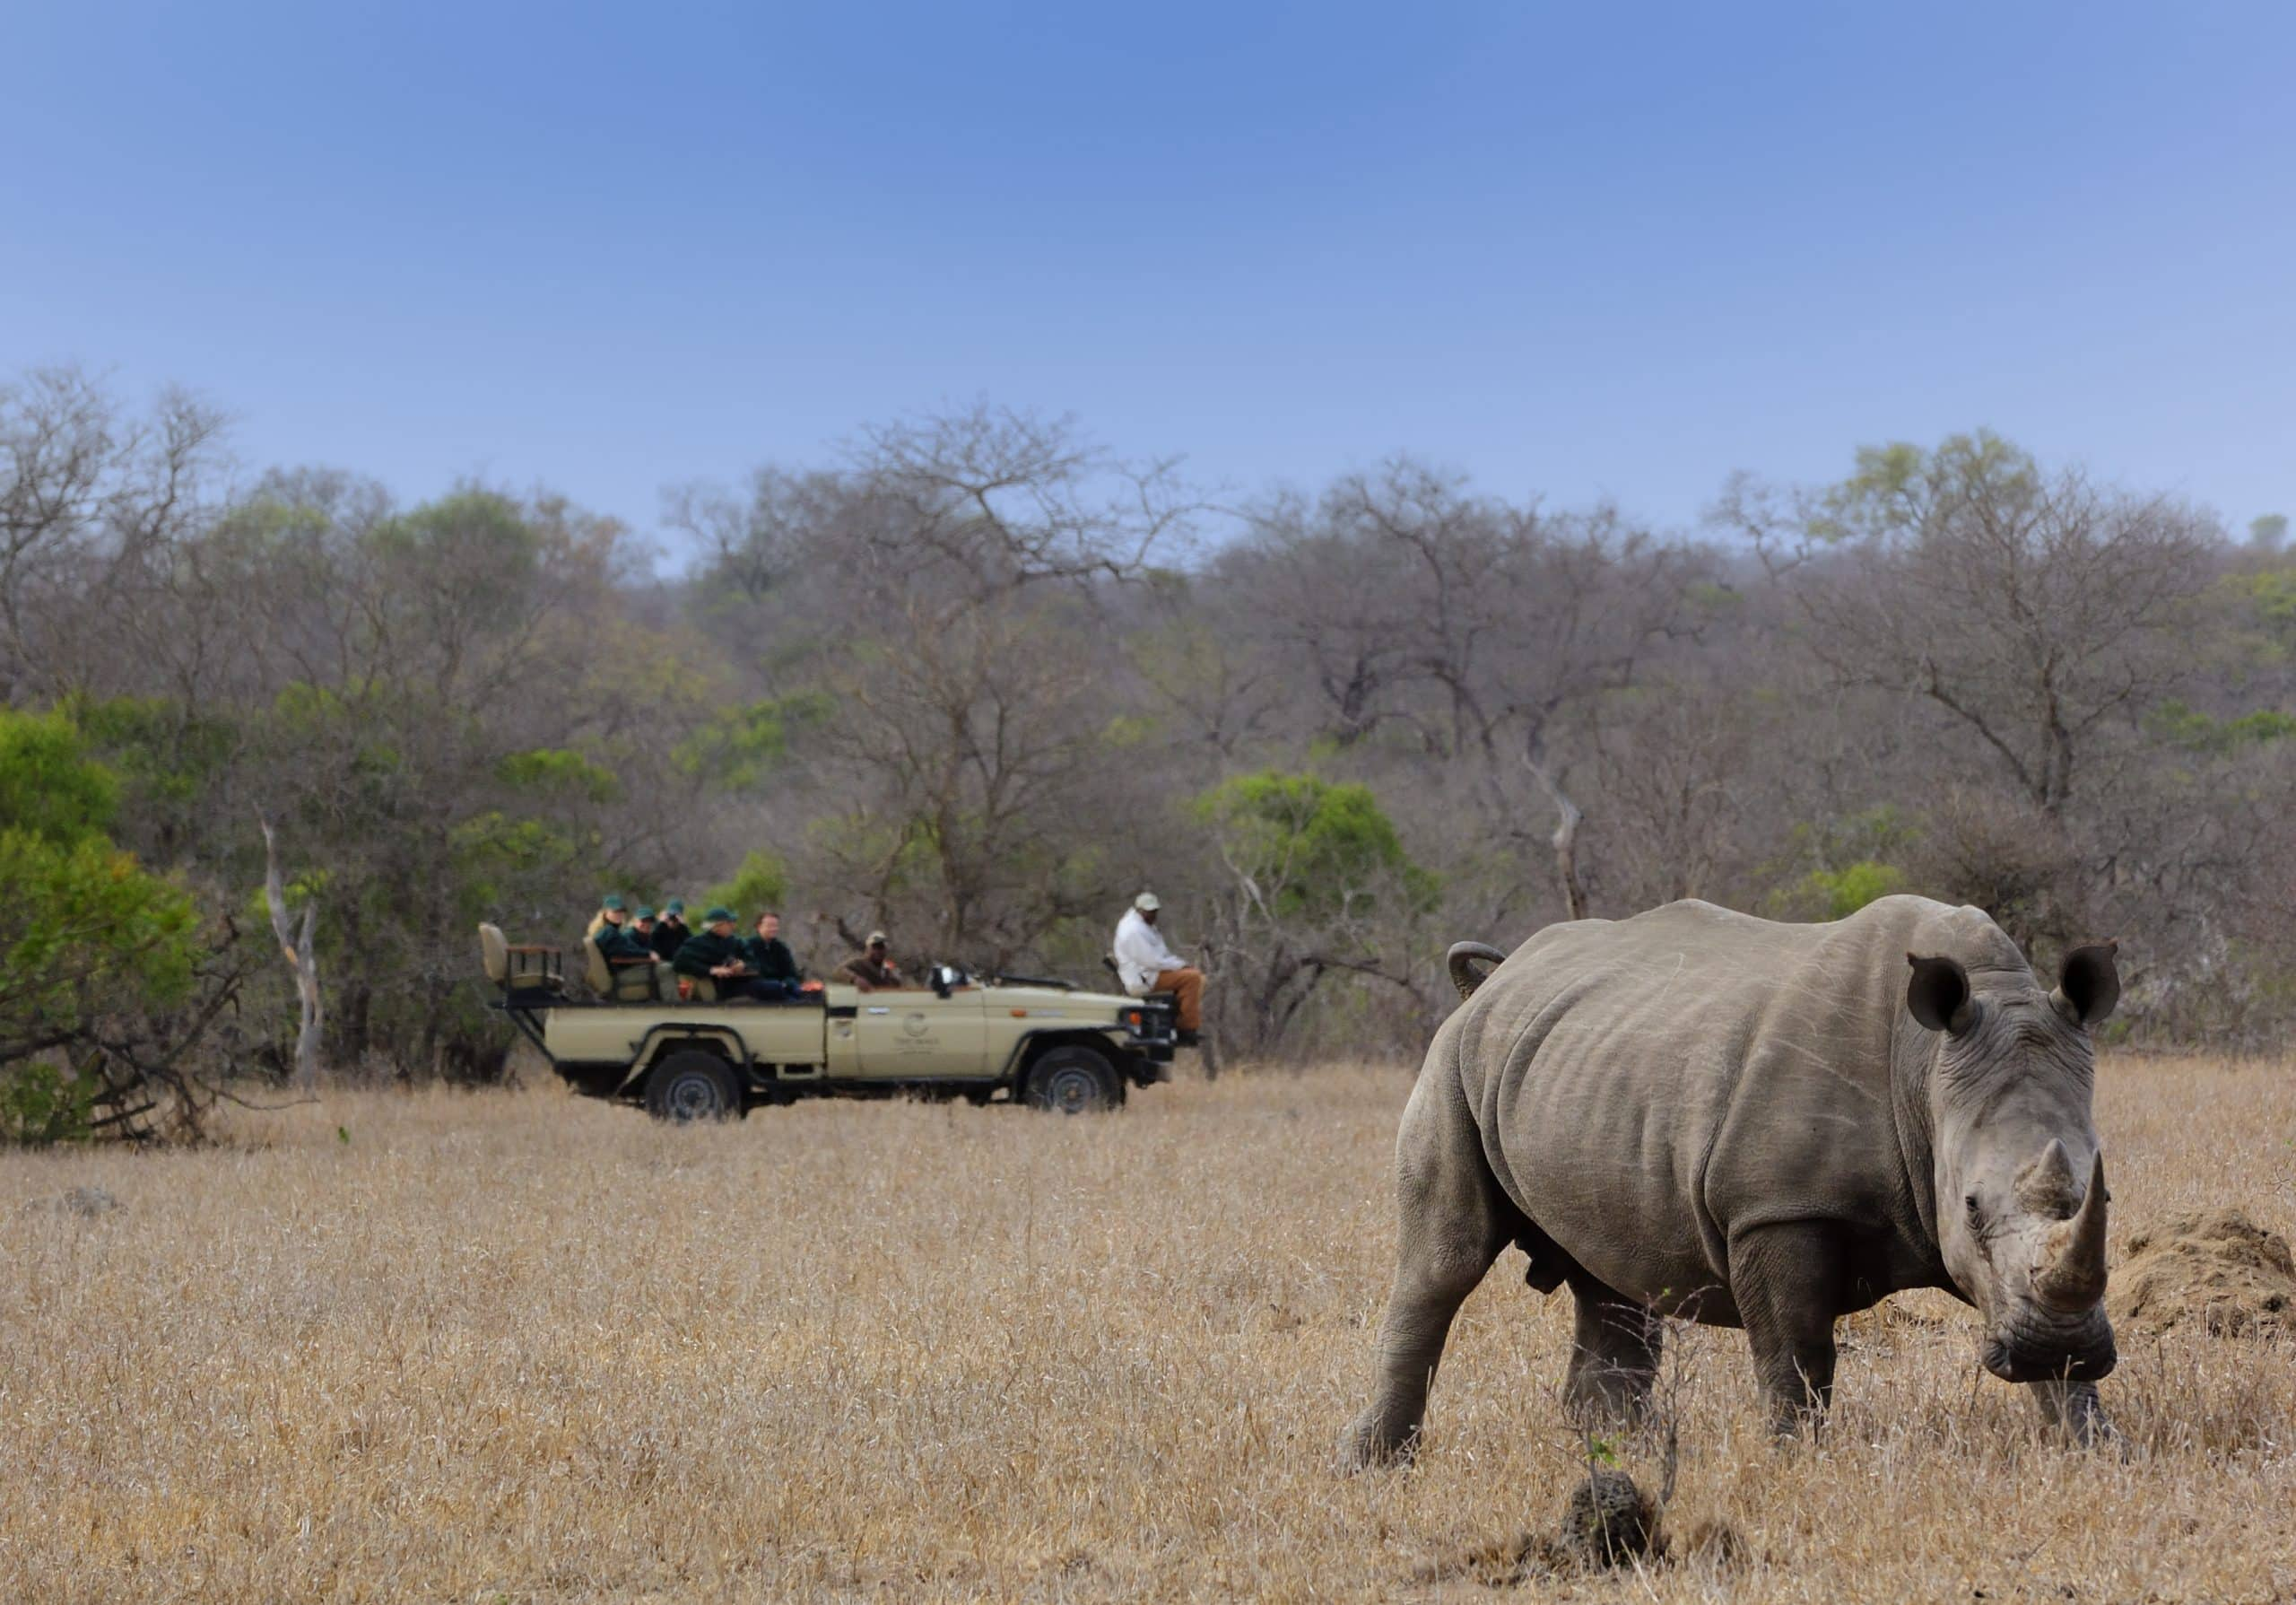 Rhino on Manyeleti plains at Tintswalo